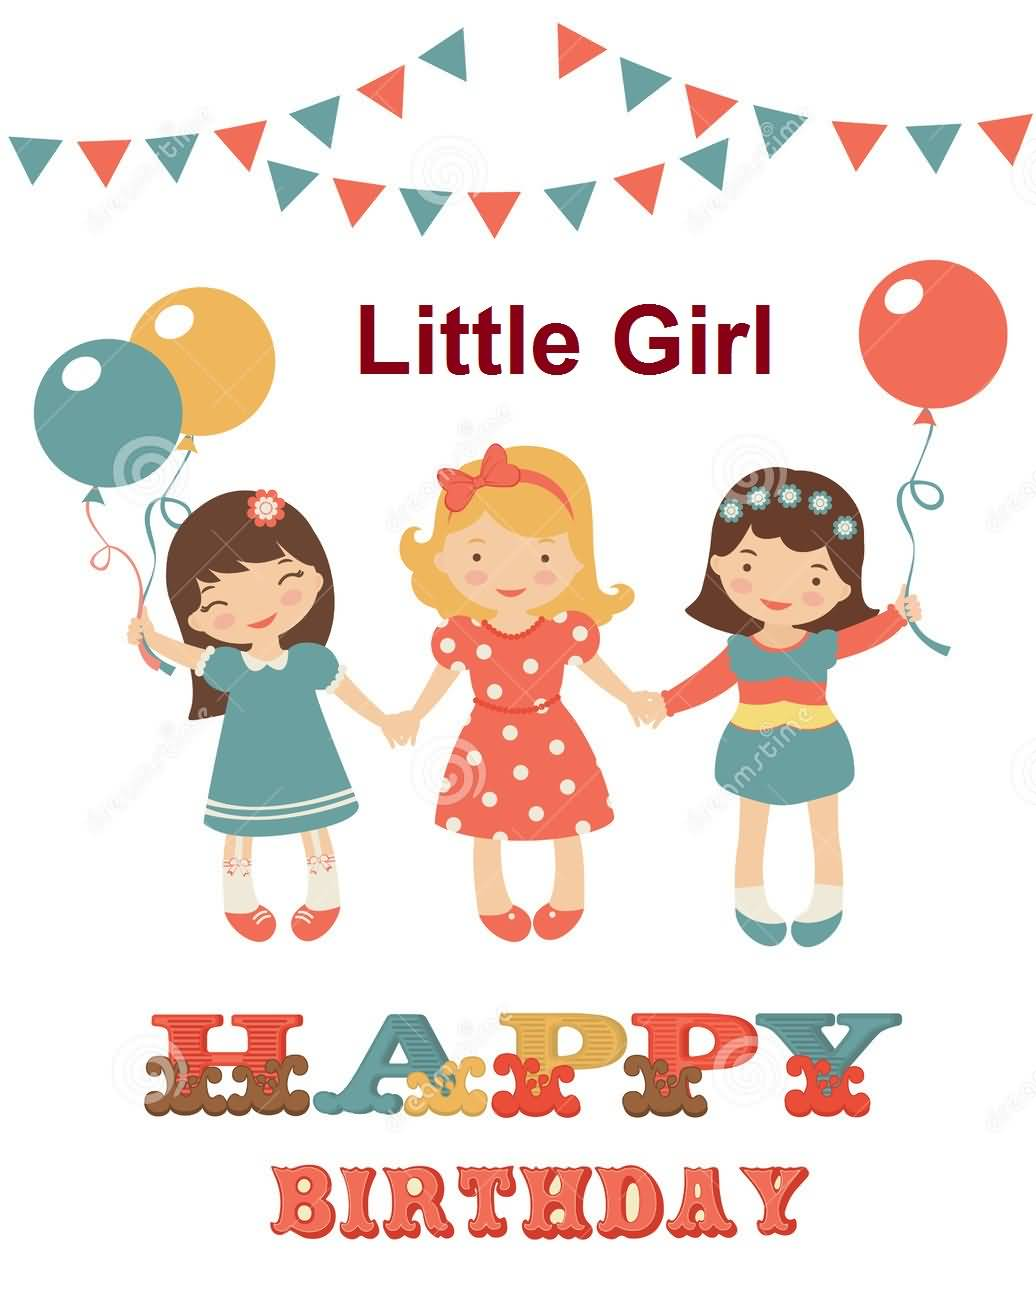 Birthday Wishes For Little Girl Ecards Images Page